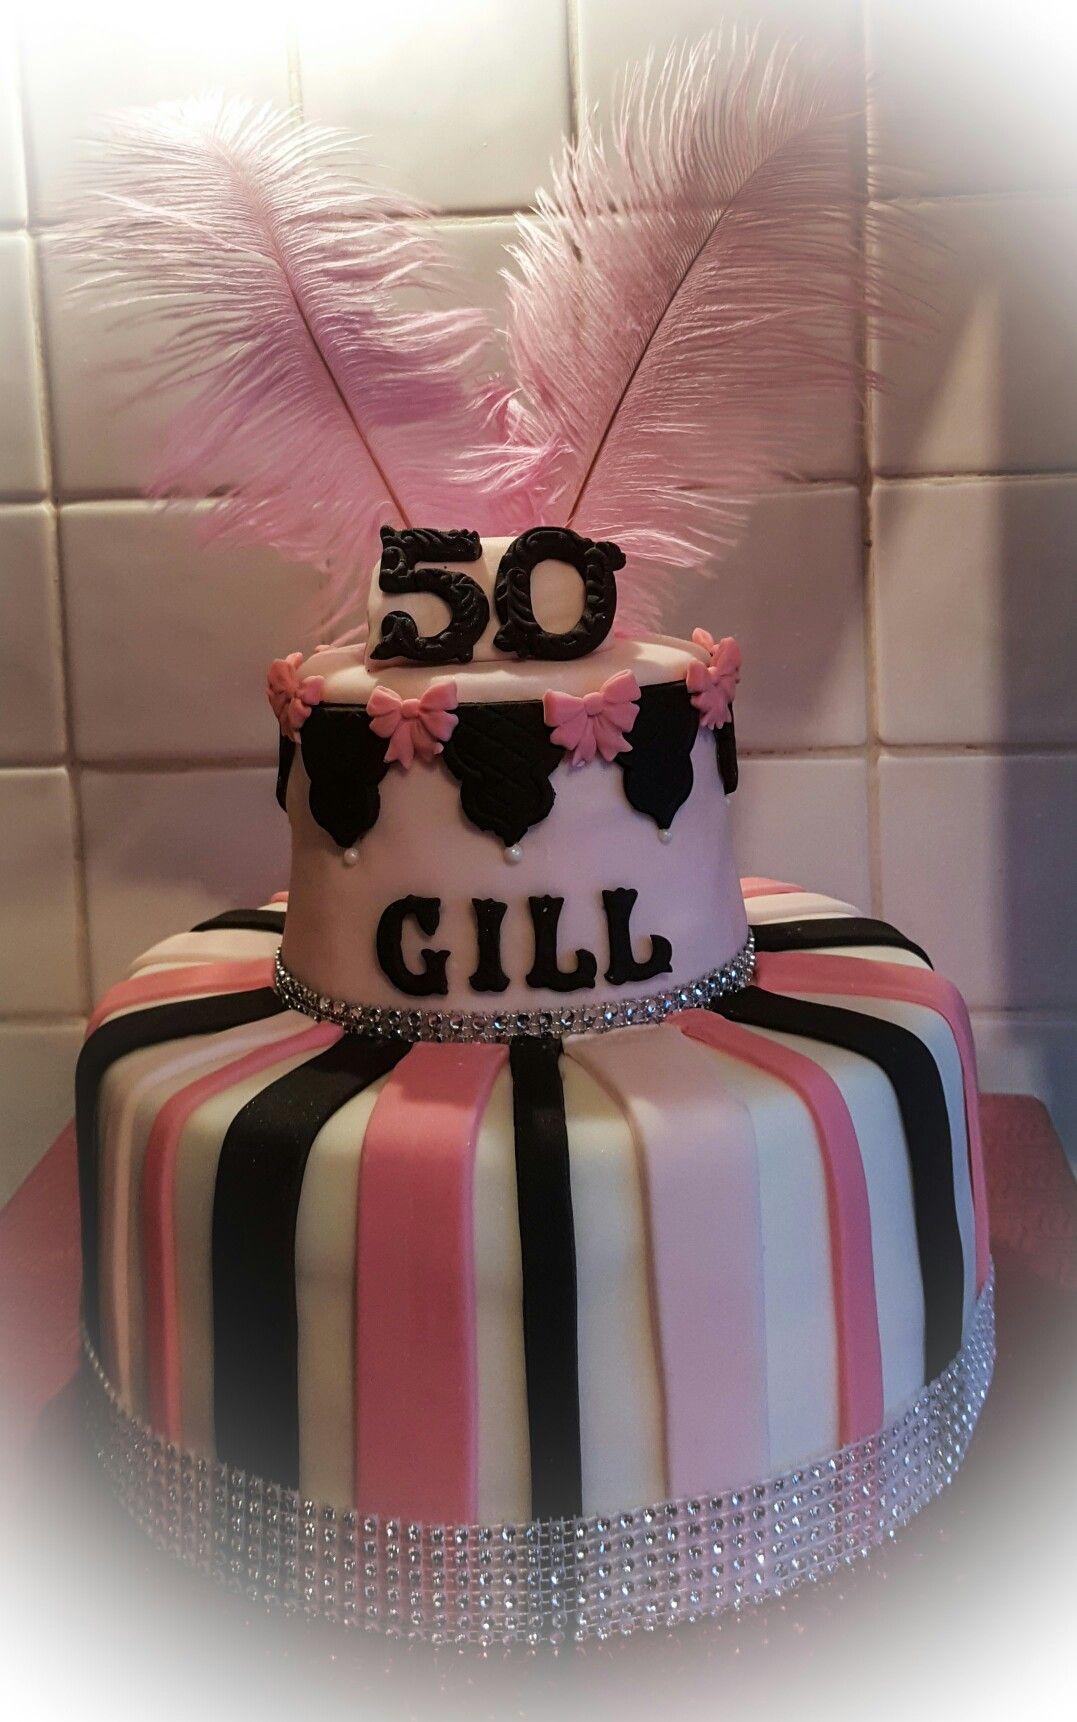 Pin on My cakes n cupcakes.